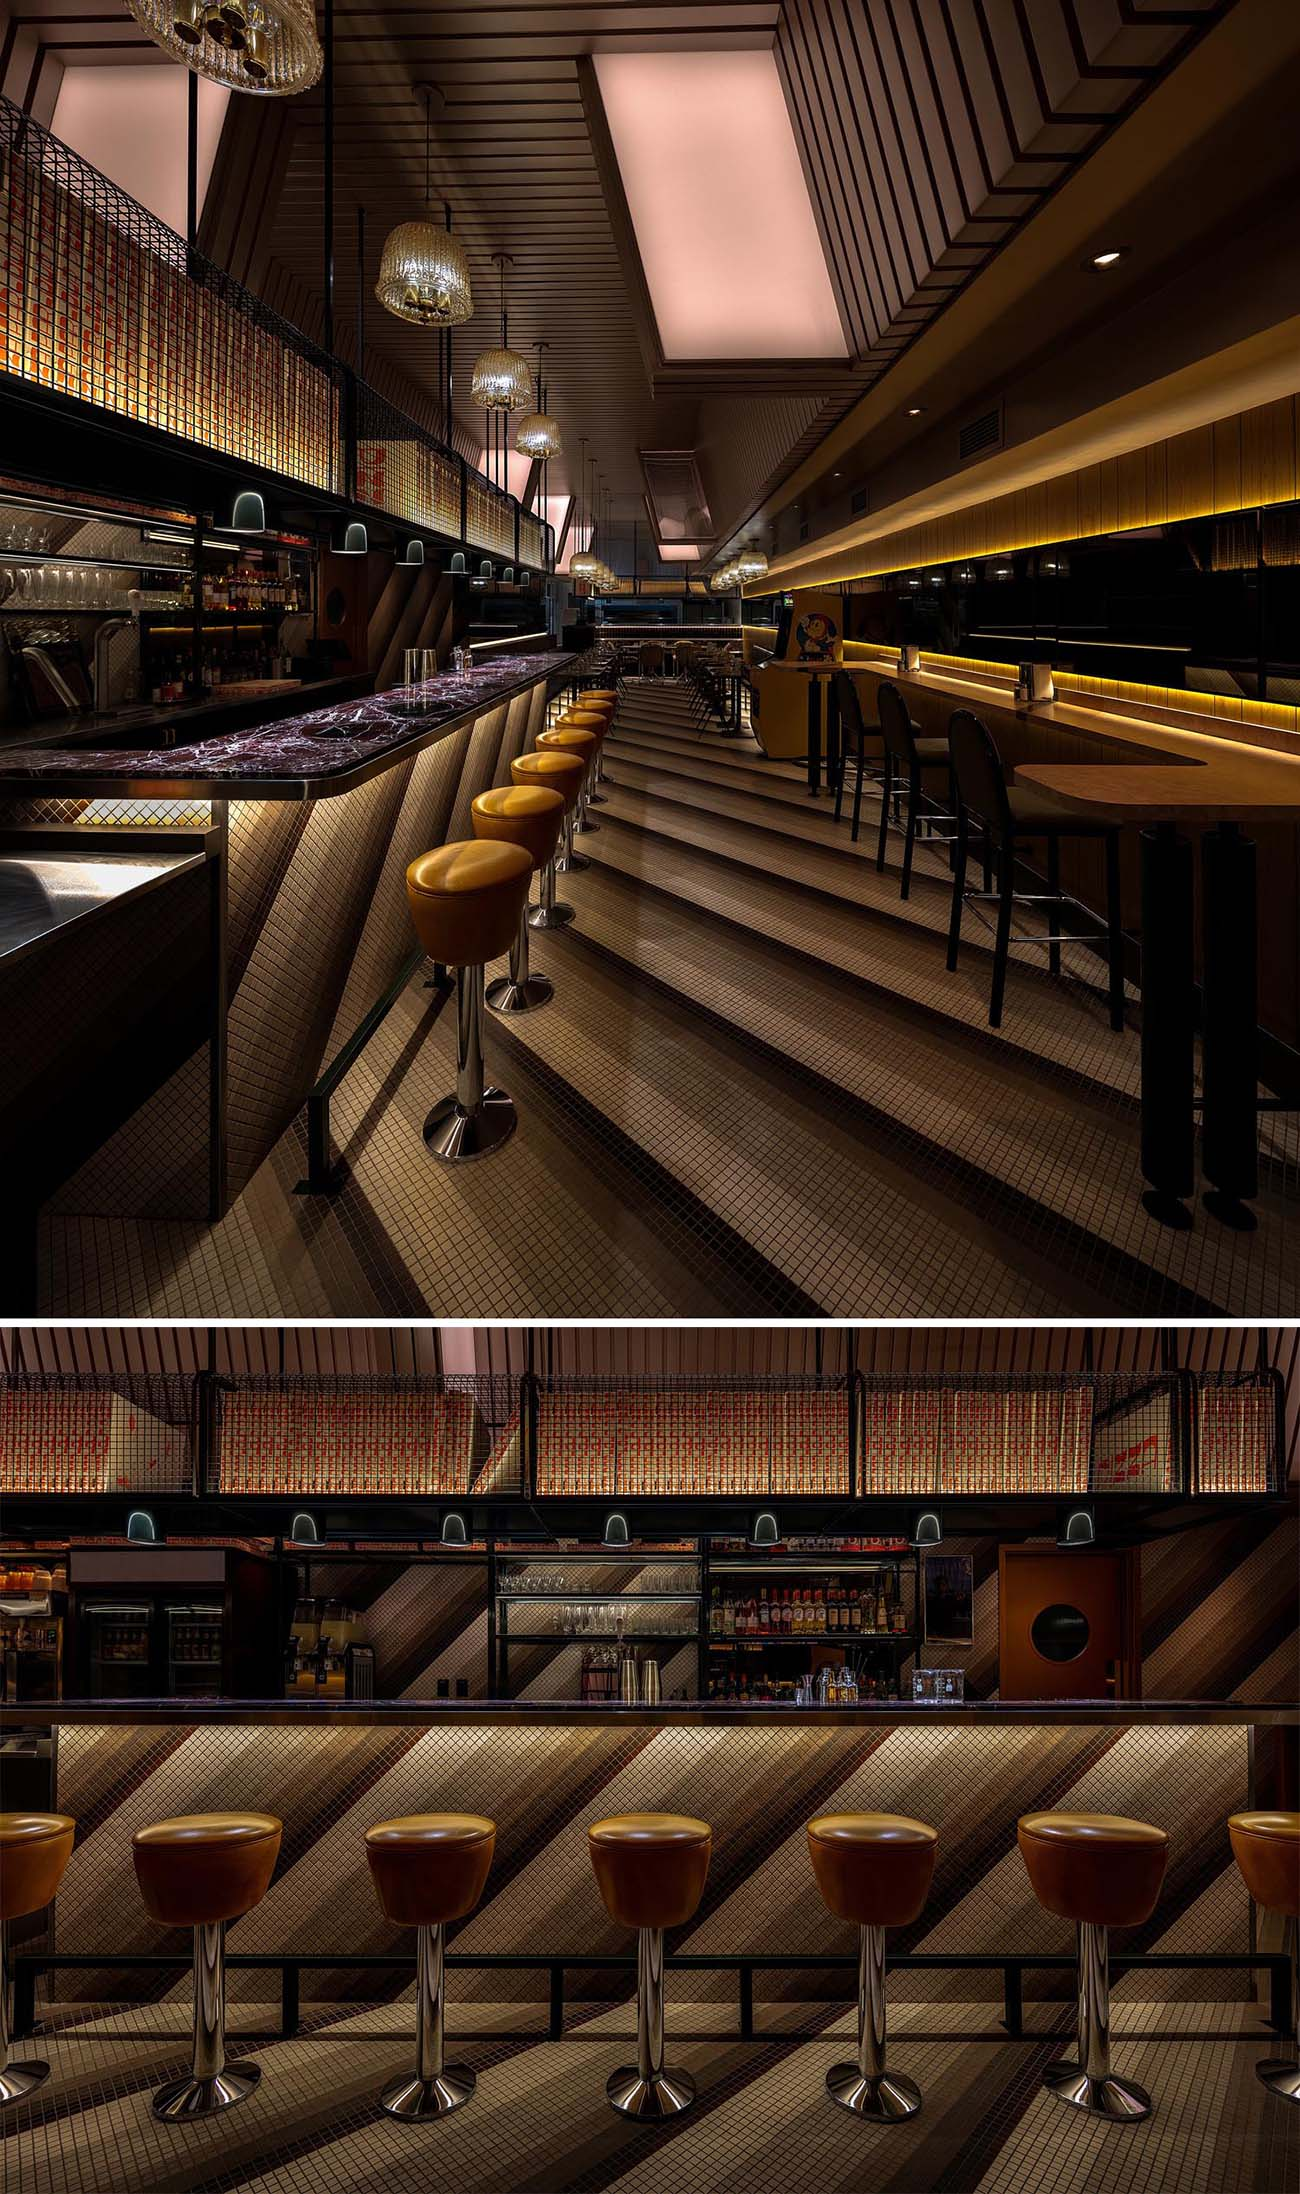 Key to the interior design of this modern restaurant is a continuous diagonal tile pattern that covers the floors, the walls, and the bar.